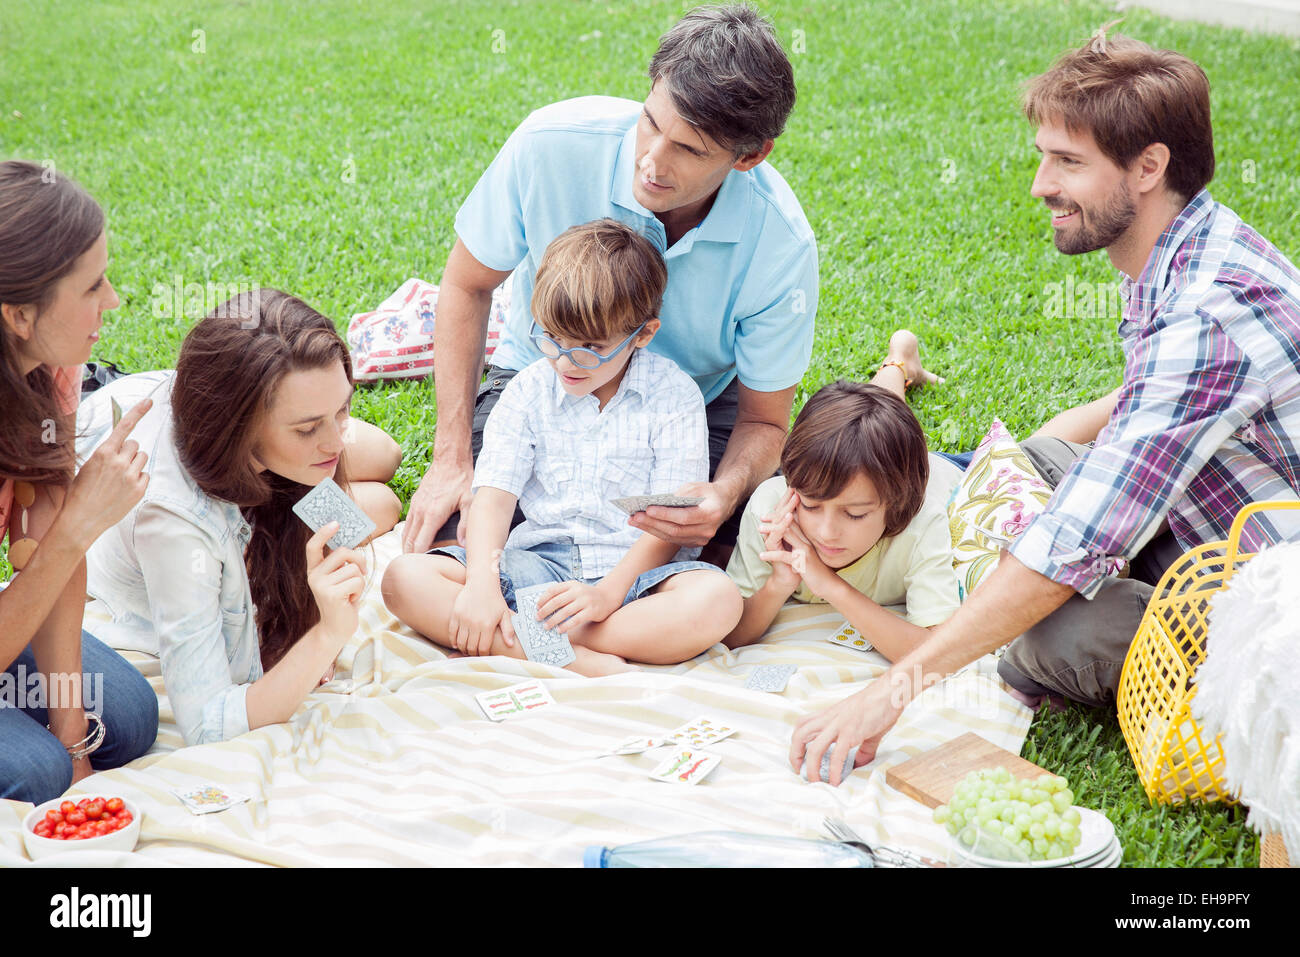 Family playing card game at picnic - Stock Image